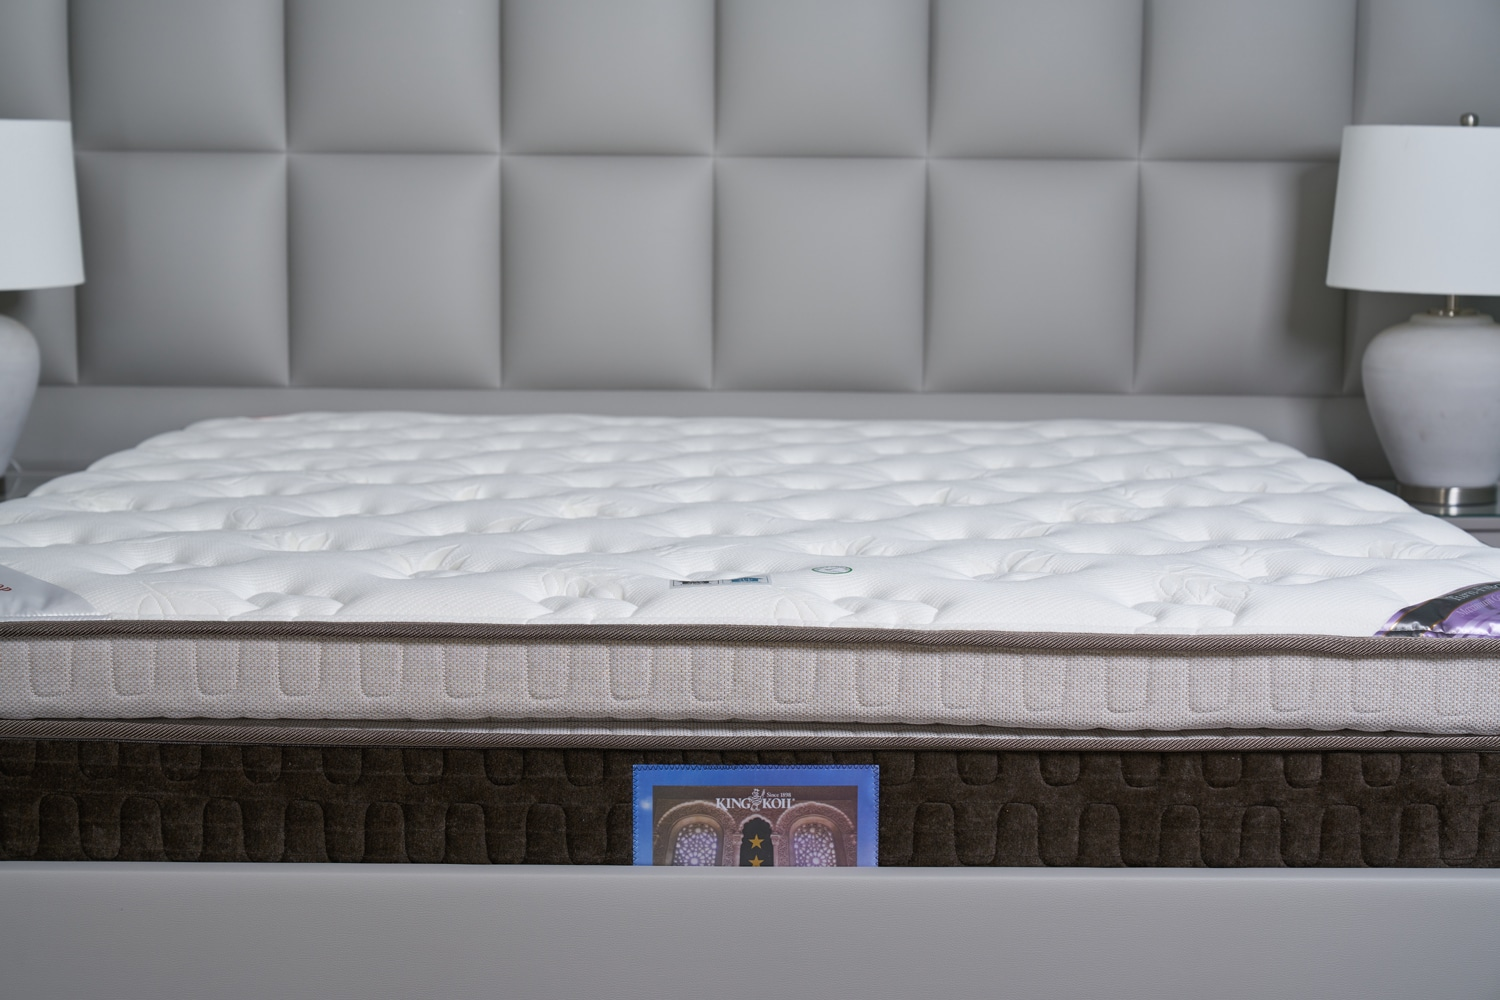 TheBedShop 2104200087 KINGKOIL MATTRESS - NEW ARABIAN NIGHTS